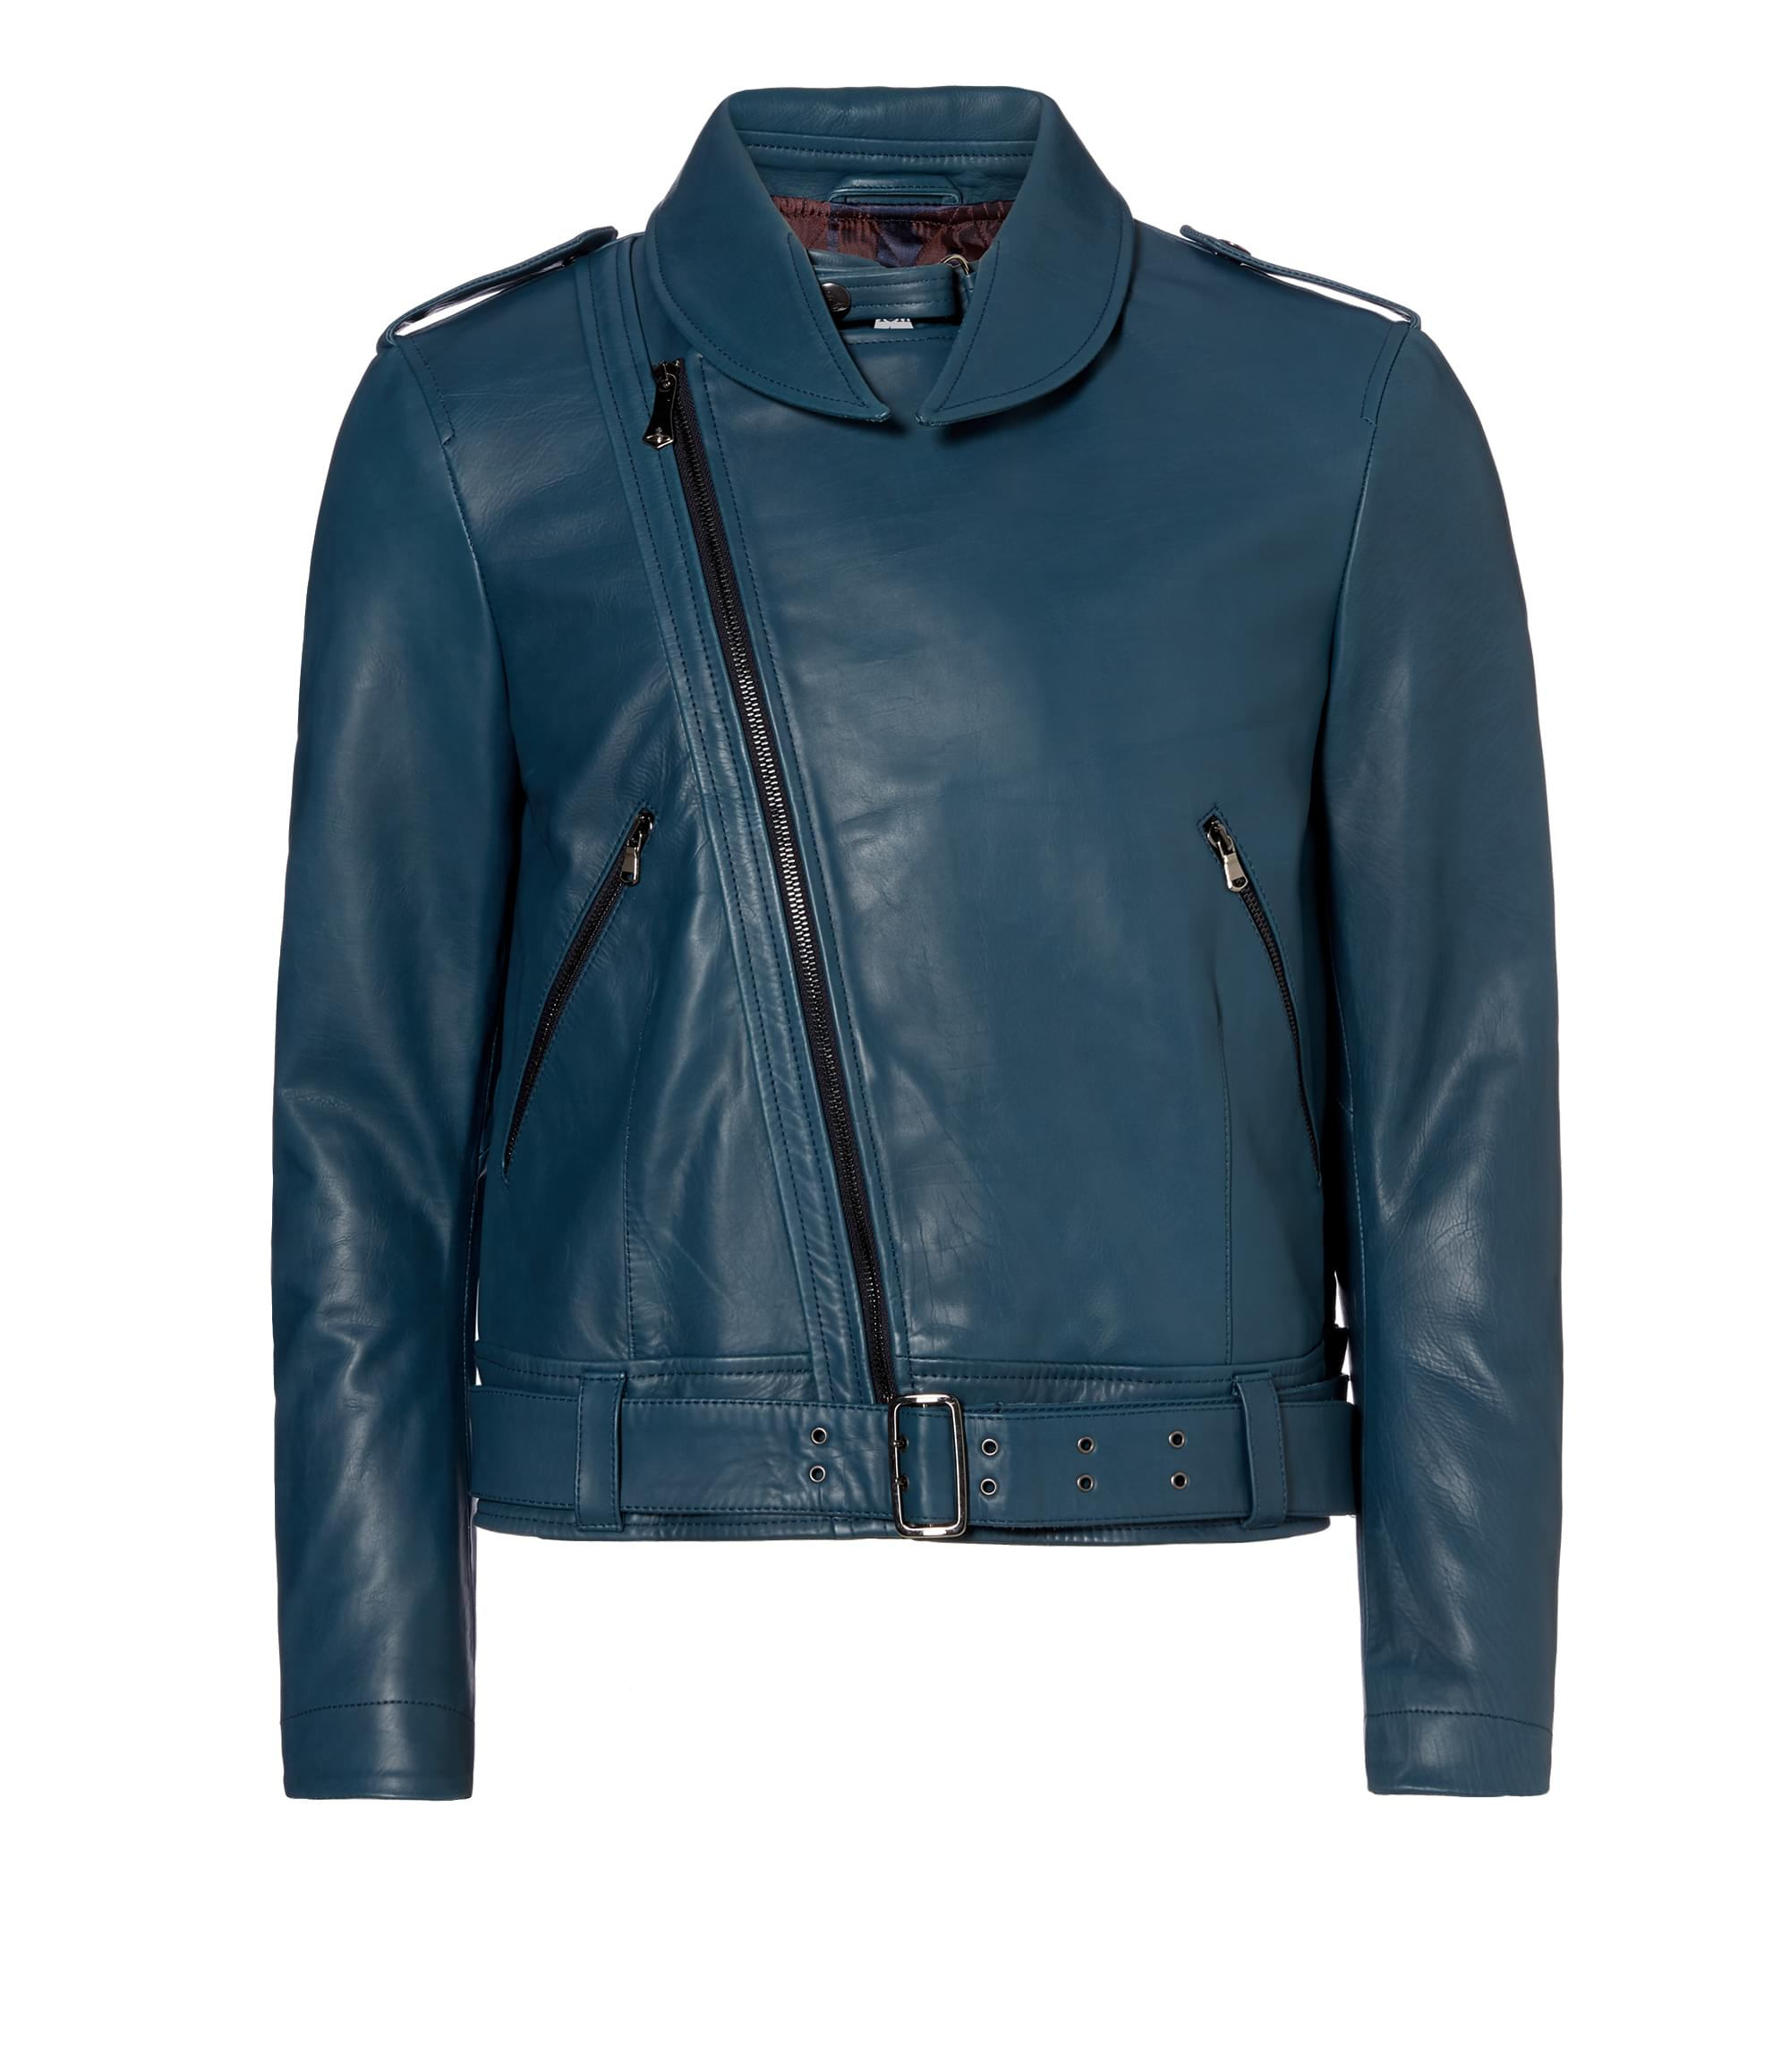 Vivienne Westwood Blue Portait Biker Jacket